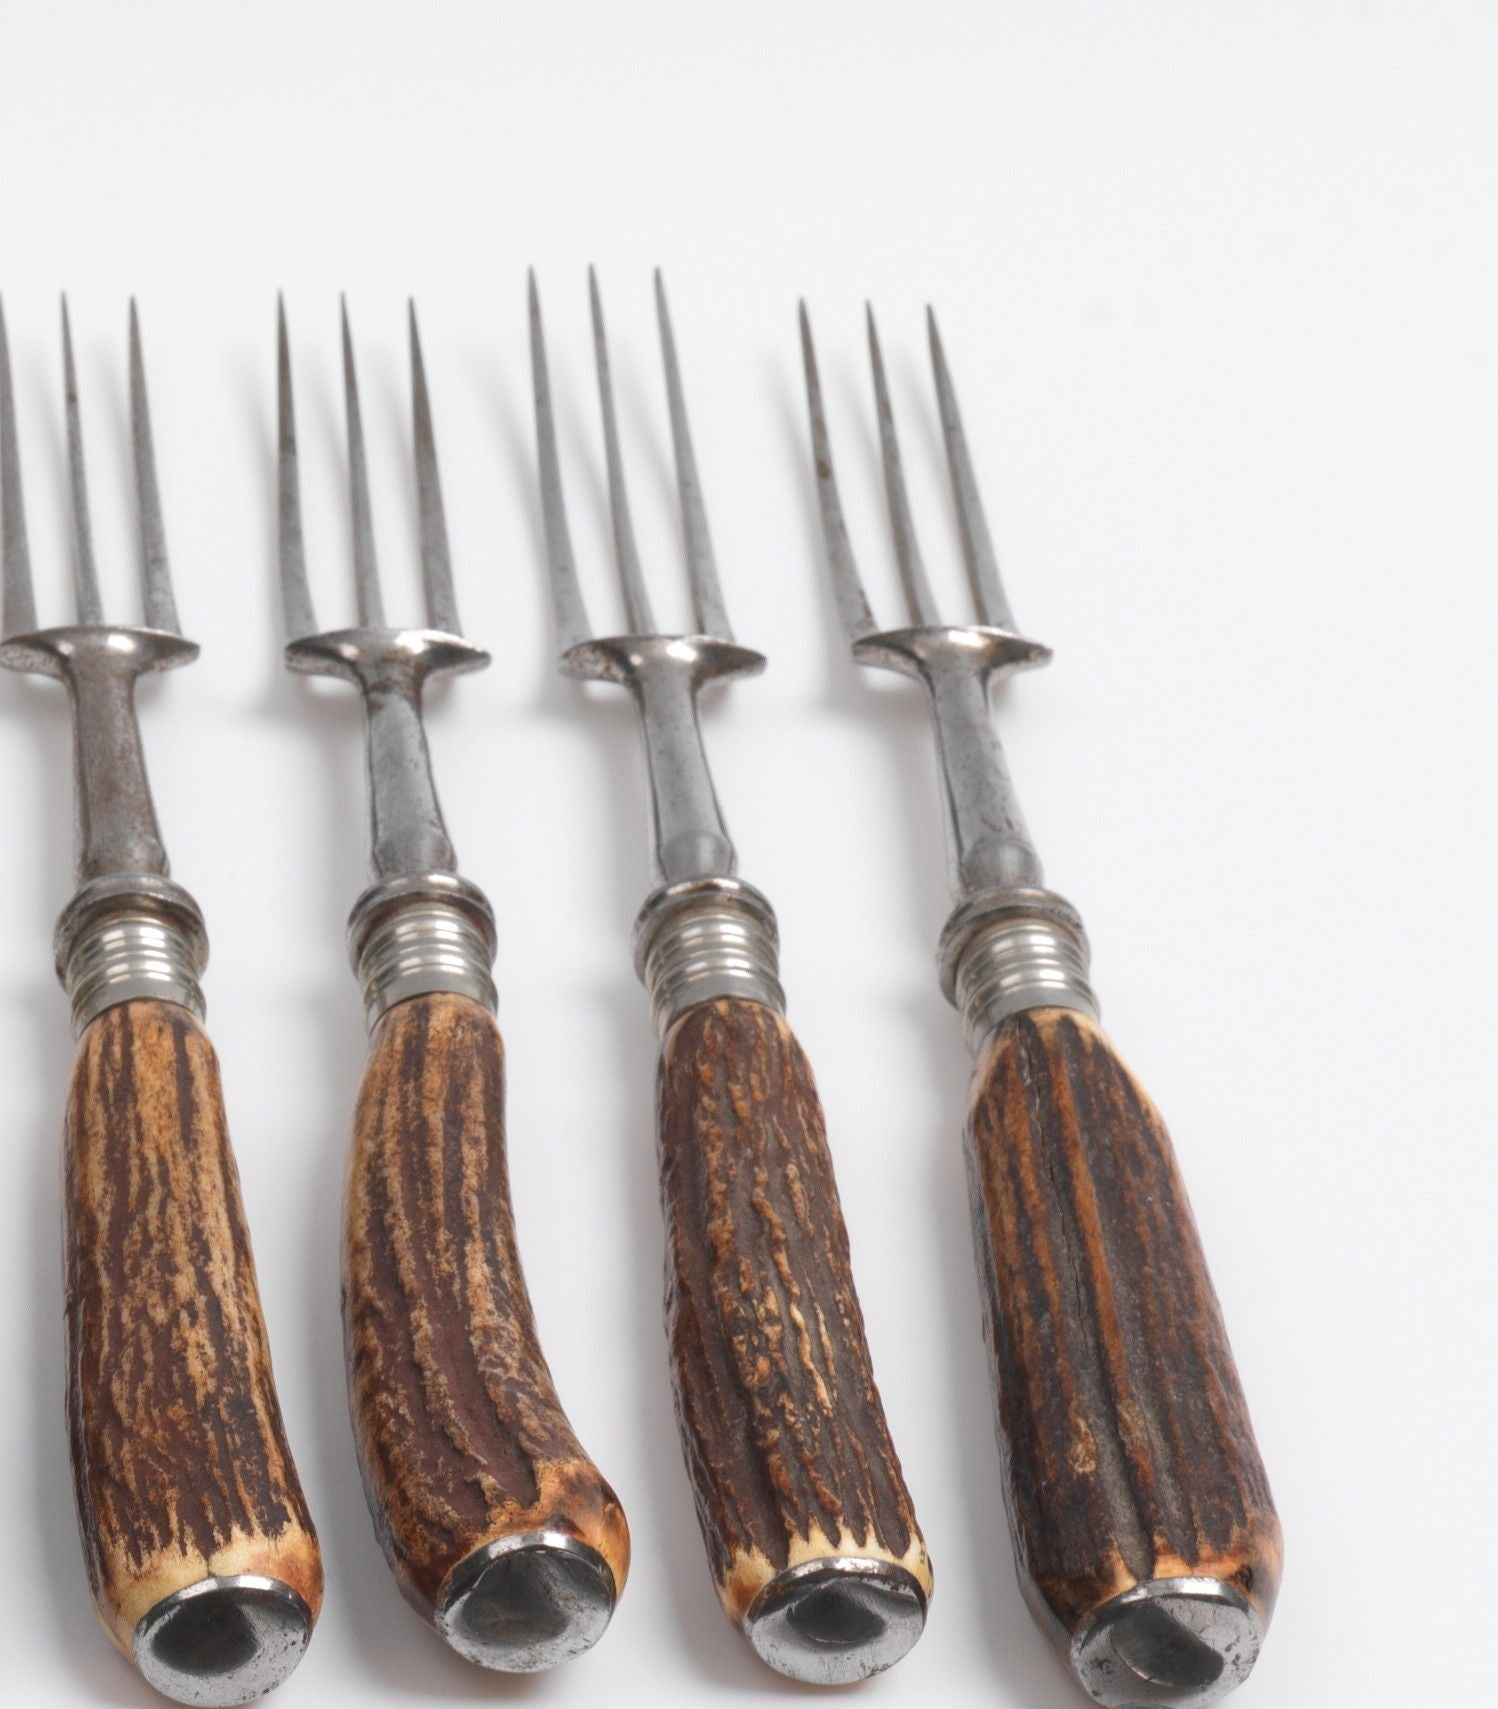 A Full Set of Twelve Stags Horn Handled Knives and Forks